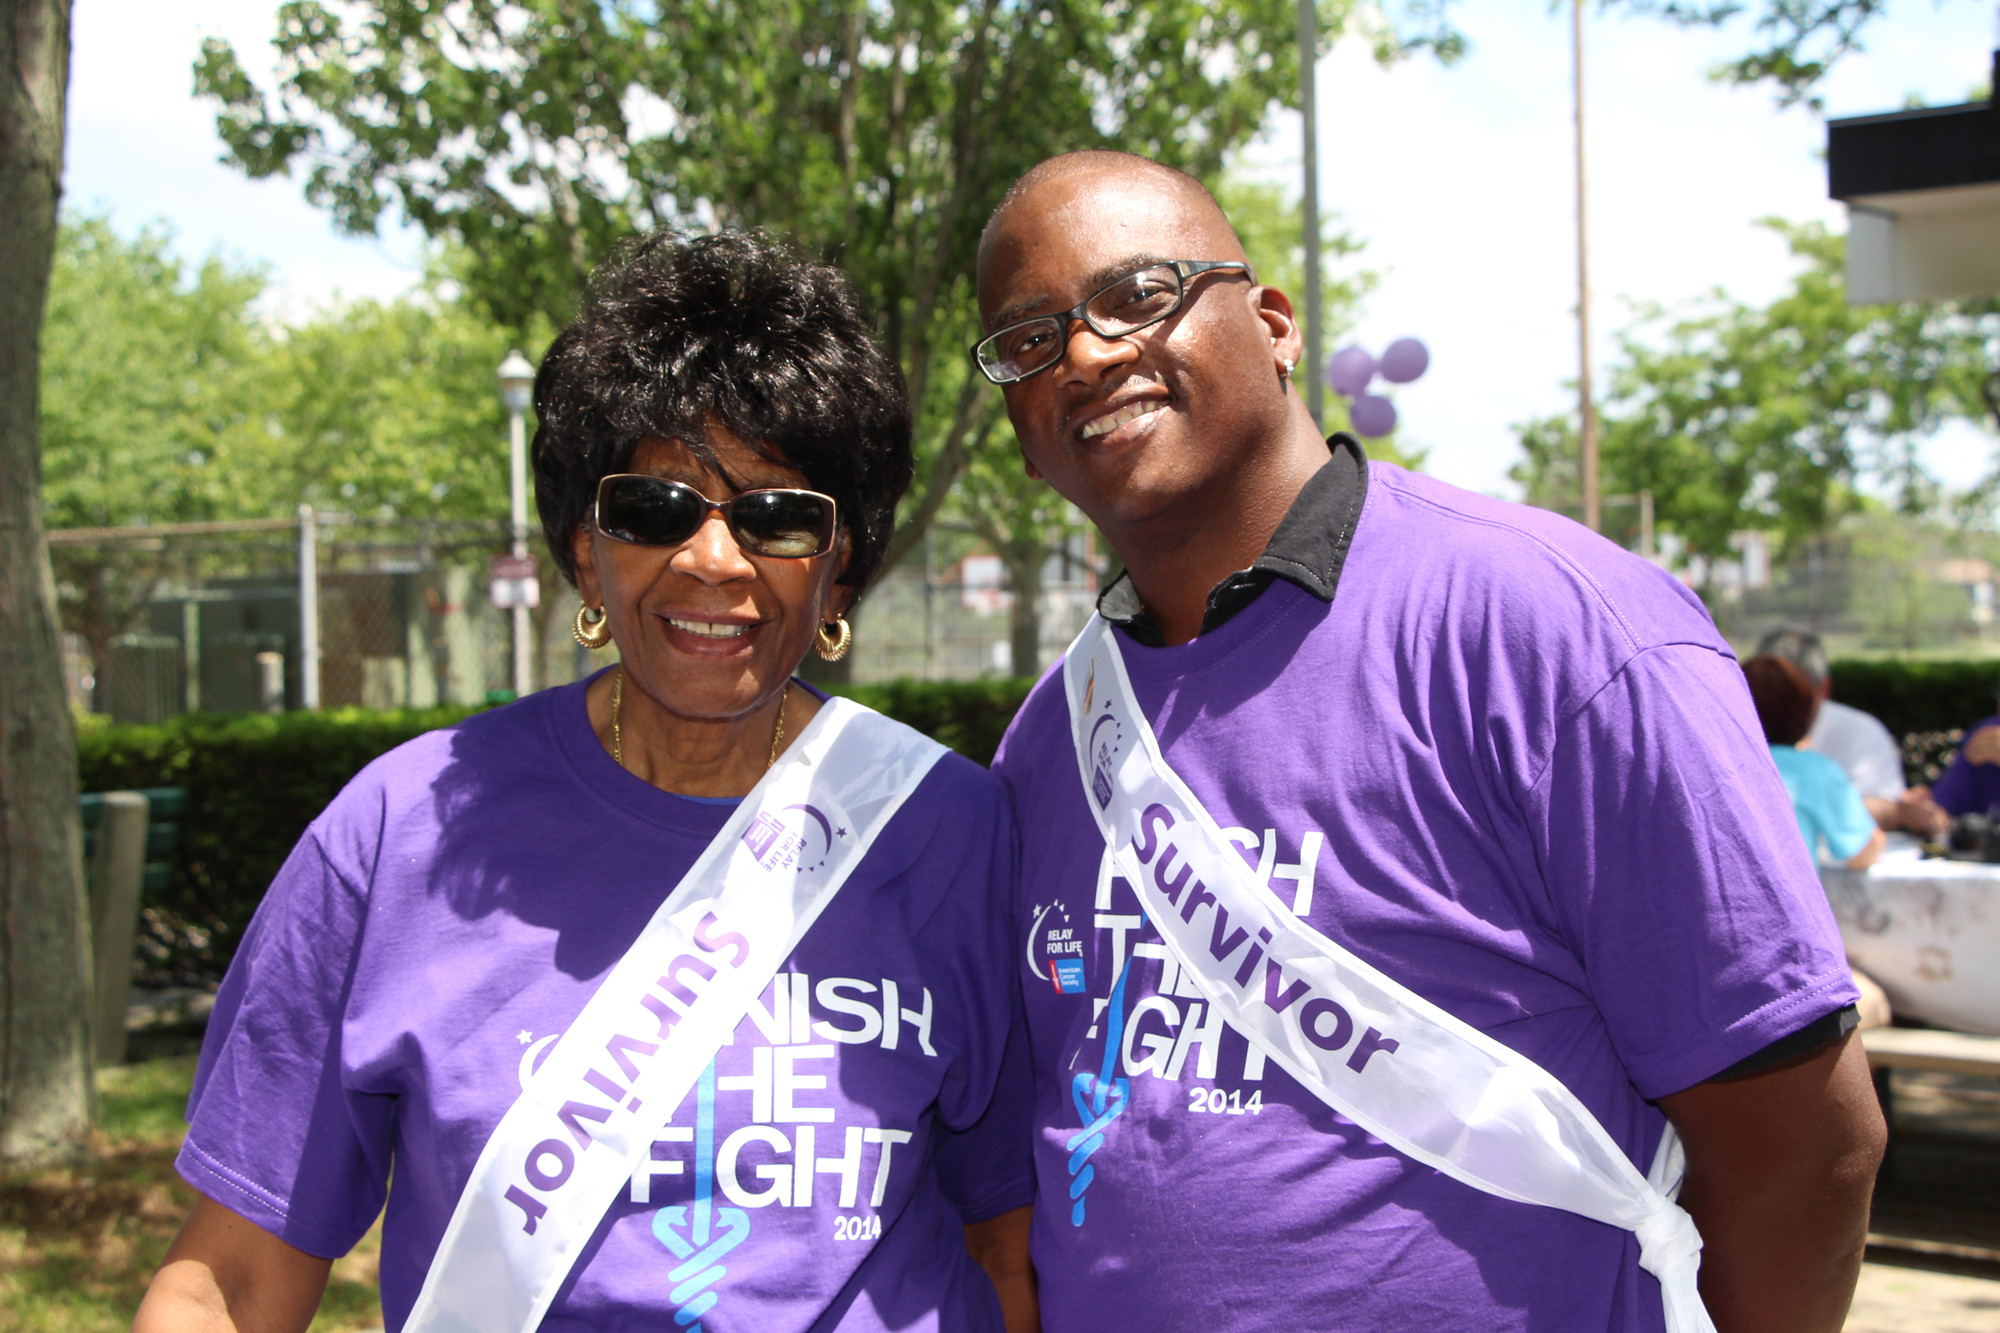 Barbara Sidney, a survivor for 40 years, posed with Floyd Wright, a survivor of 17 years at Baldwin's Relay For Life on June 14 at Baldwin Park.